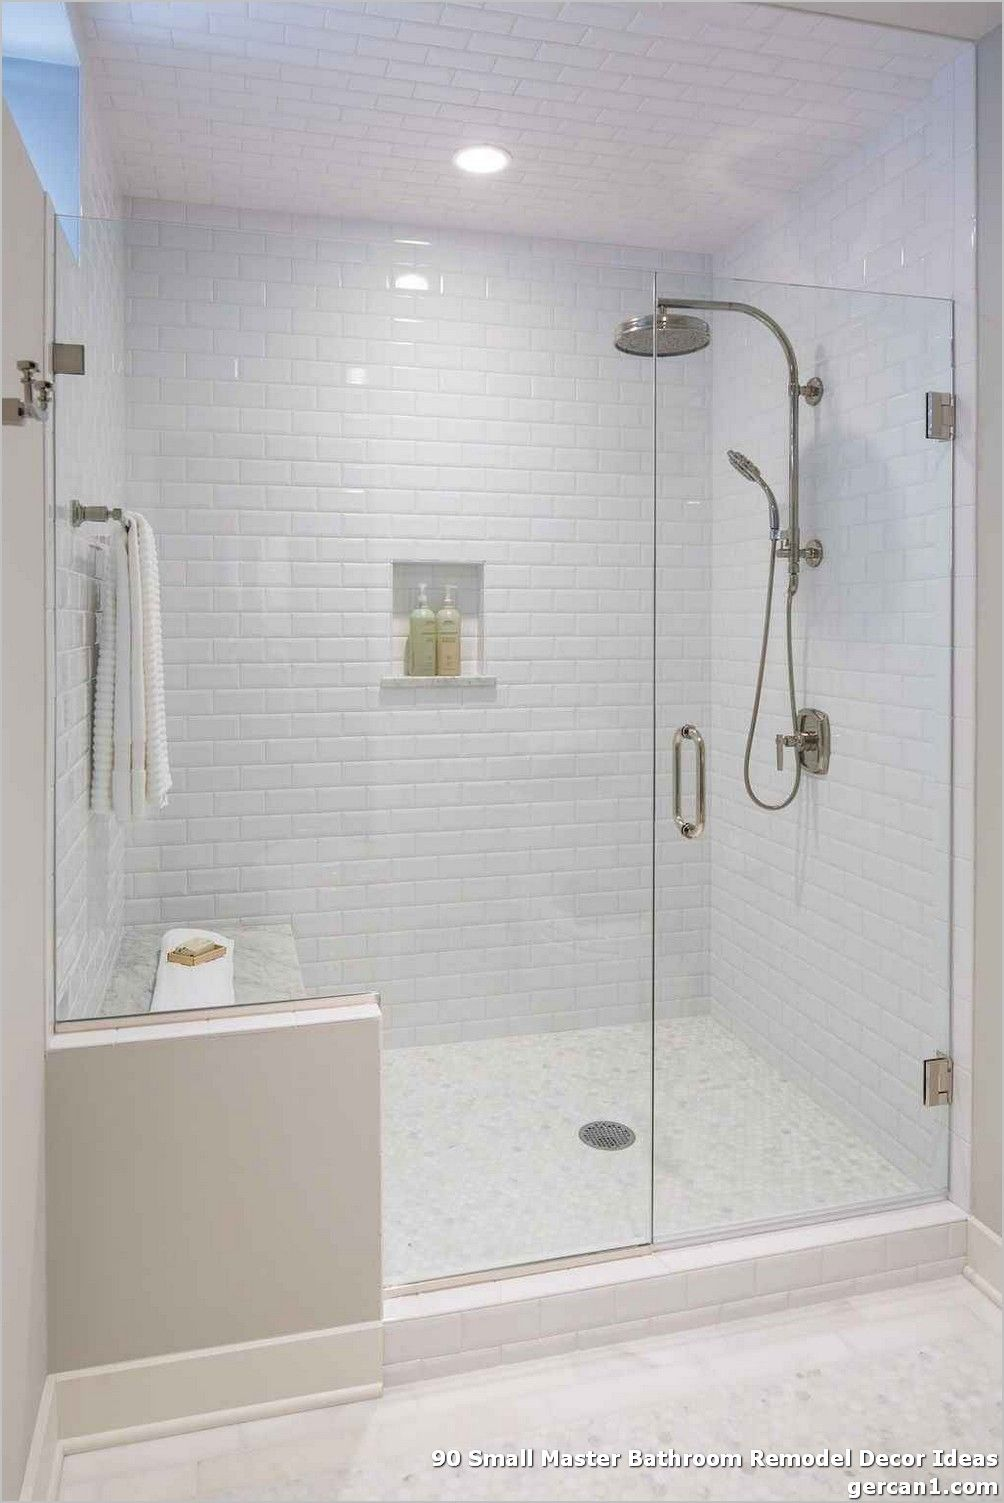 90 Small Master Bathroom Remodel Decor Ideas Small Rest Room Design Is Lastly Stepping Ou Bathroom Remodel Shower Diy Bathroom Remodel Small Shower Remodel